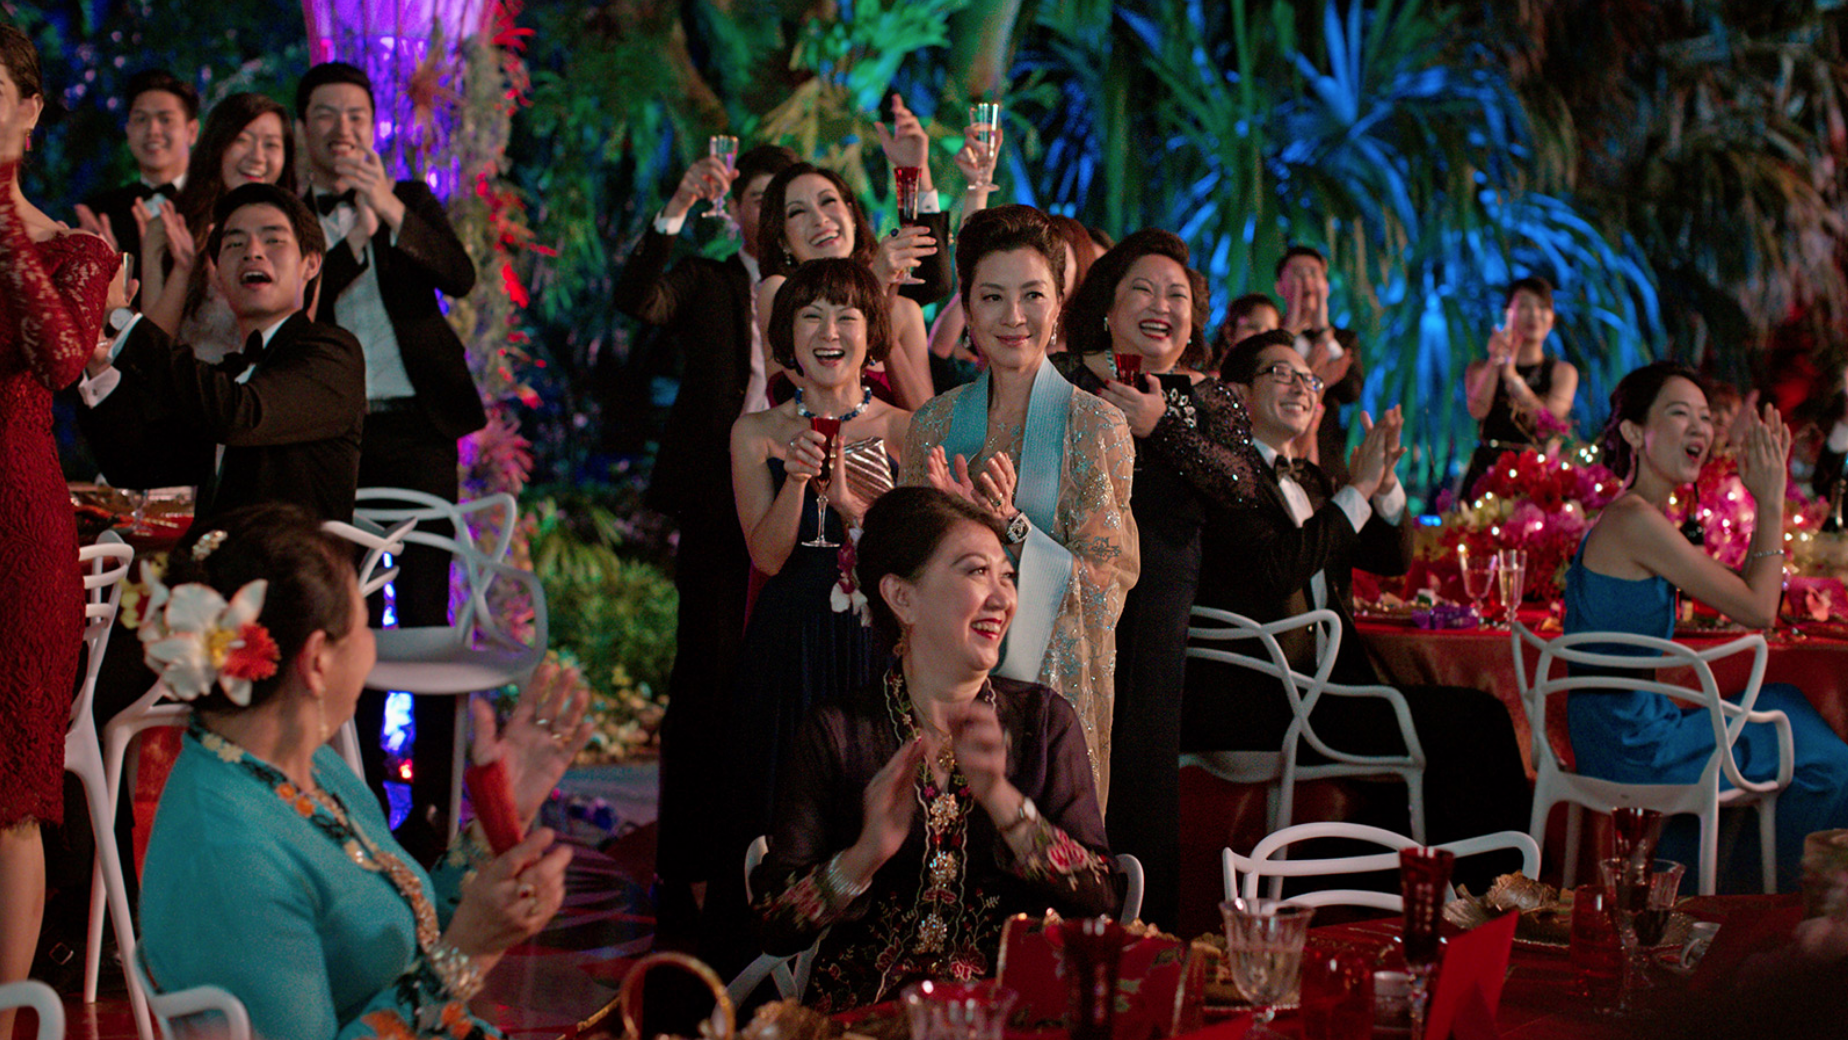 5 Fun Facts About Singapore That 'Crazy Rich Asians' Fans Will Appreciate